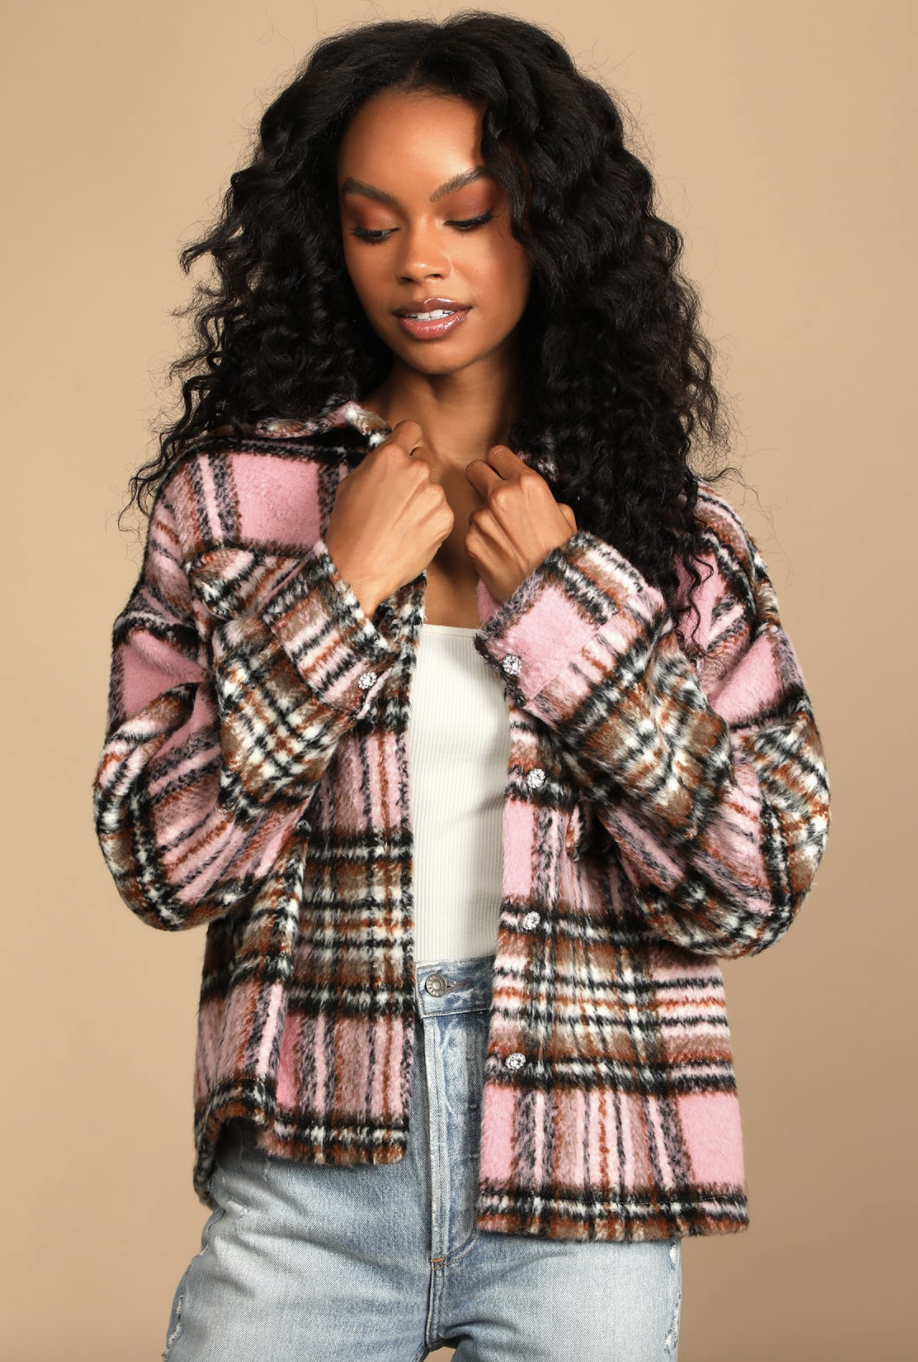 black model with curly hair posing in The City is Calling Pink Plaid Shacket